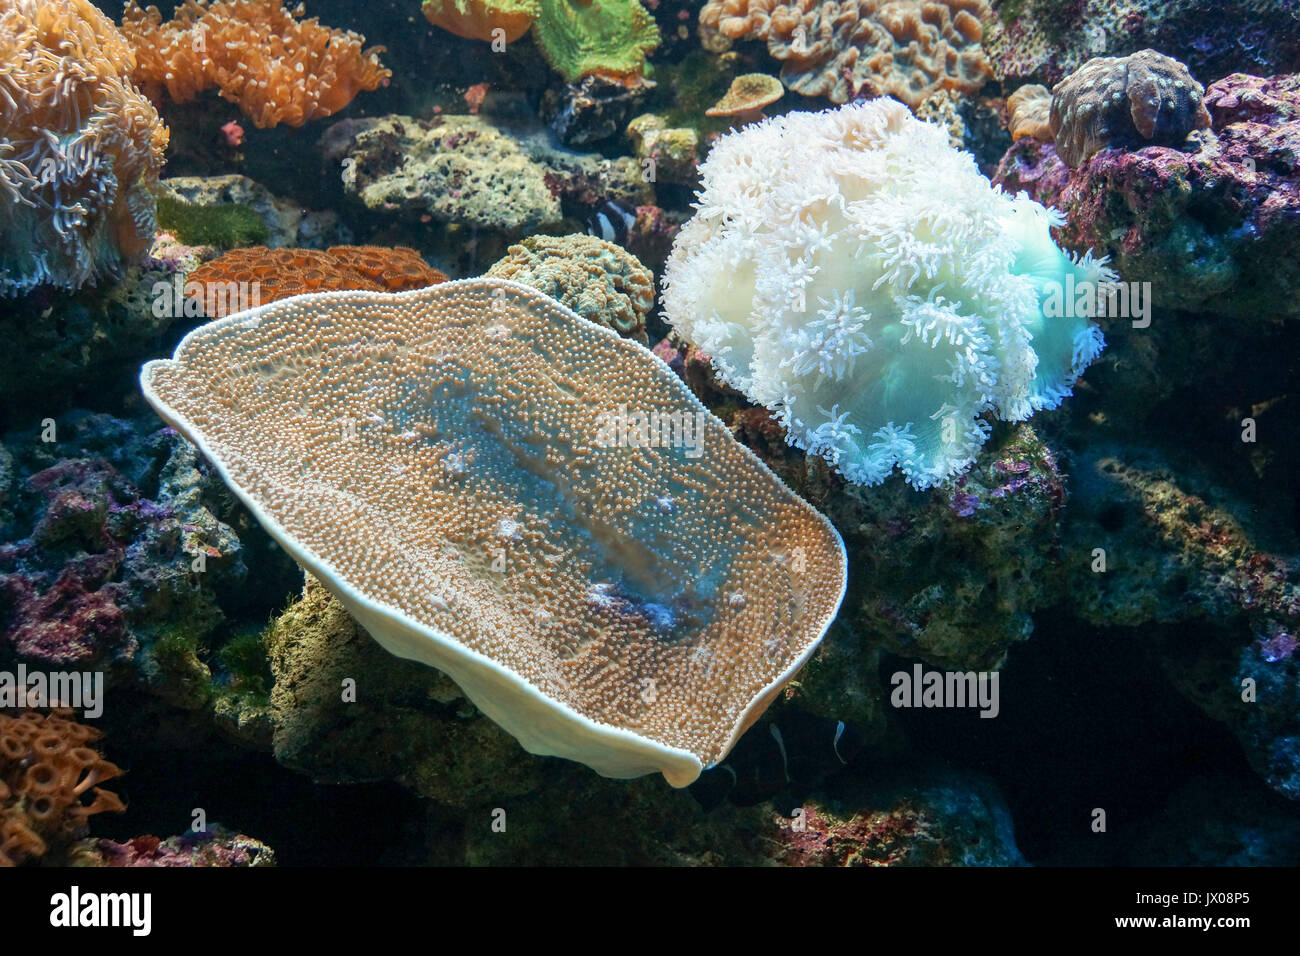 Types of coral stock photos types of coral stock images alamy coral reef with many different types of coral stock image publicscrutiny Images